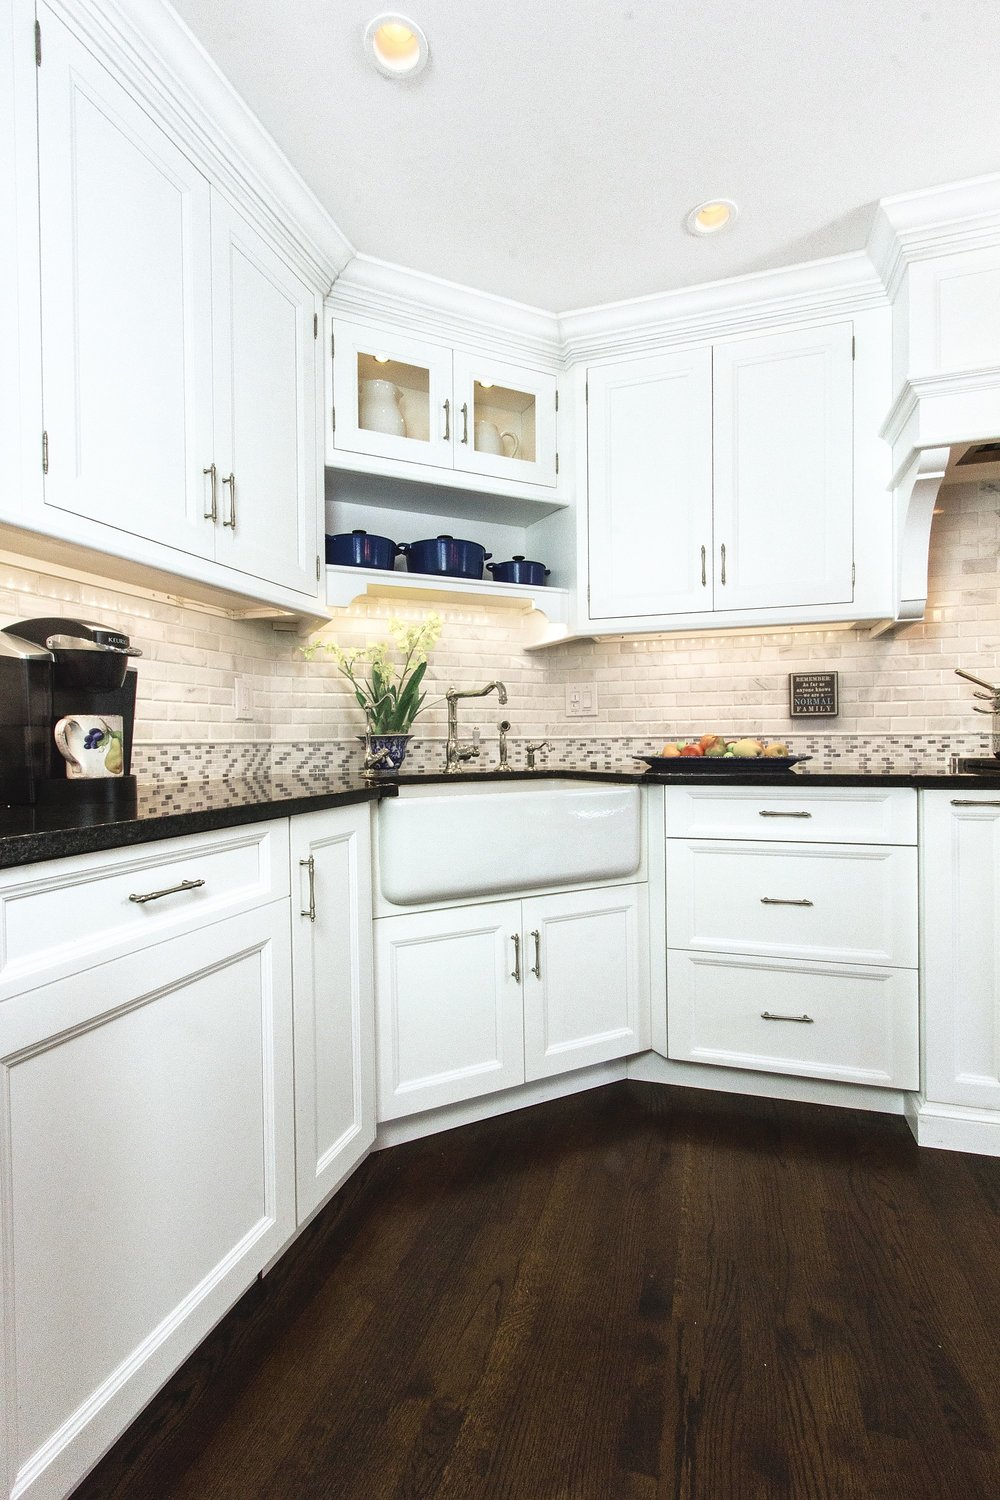 Transitional style kitchen with small glass door cabinet and open shelf